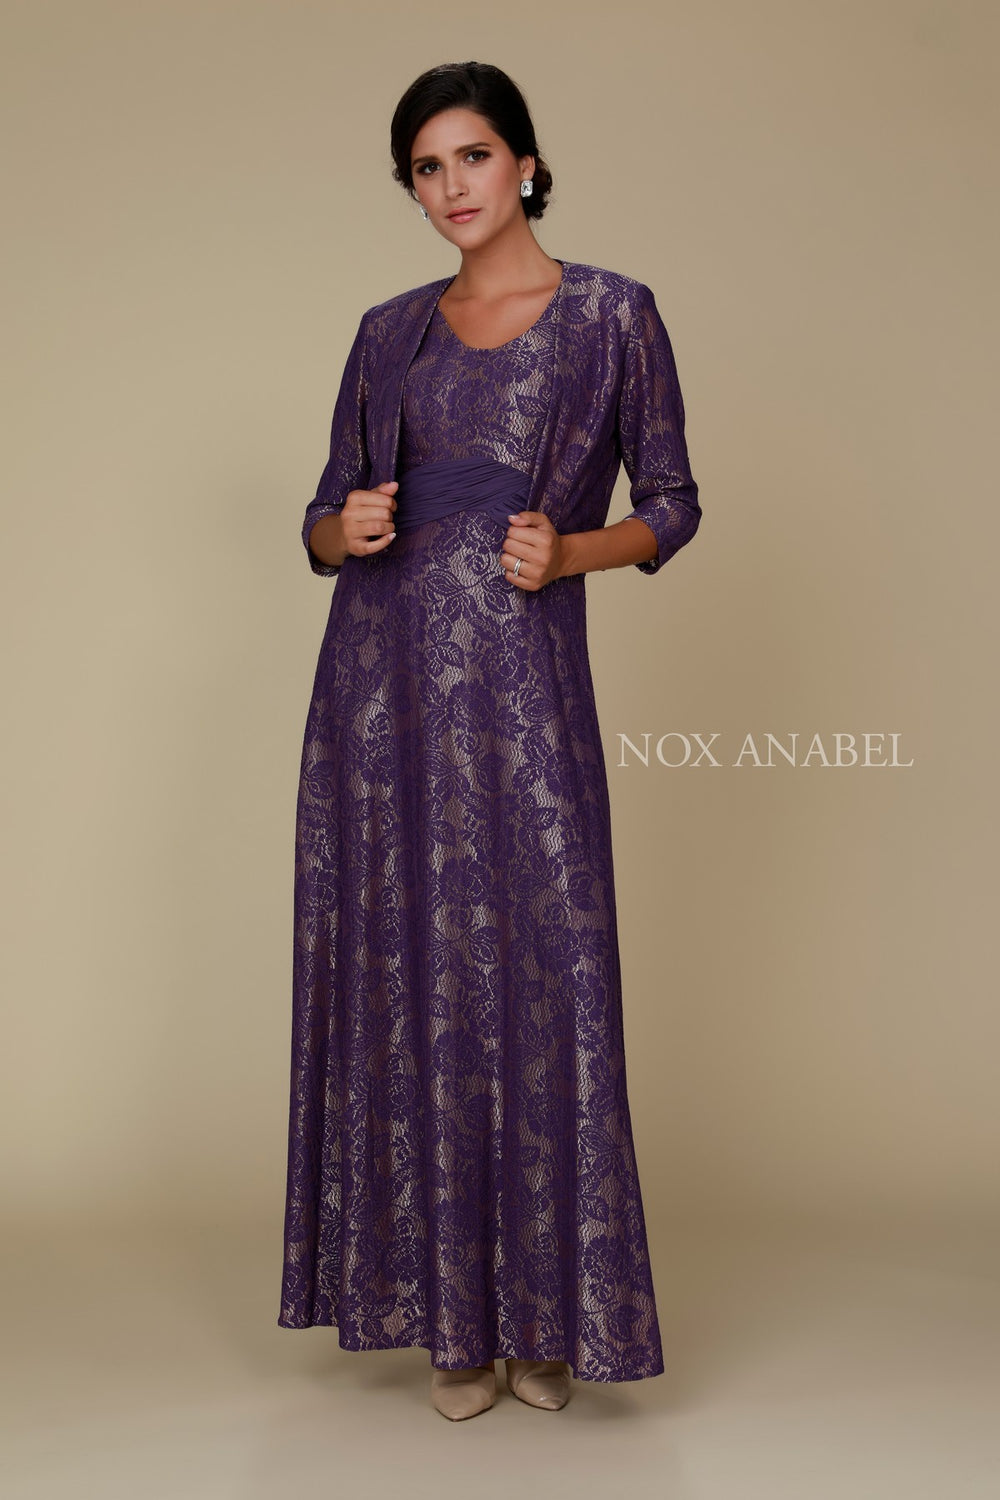 MOTHER OF THE BRIDE AND GROOM DRESS WITH SHORT JACKET 5139 BY NARIANNA